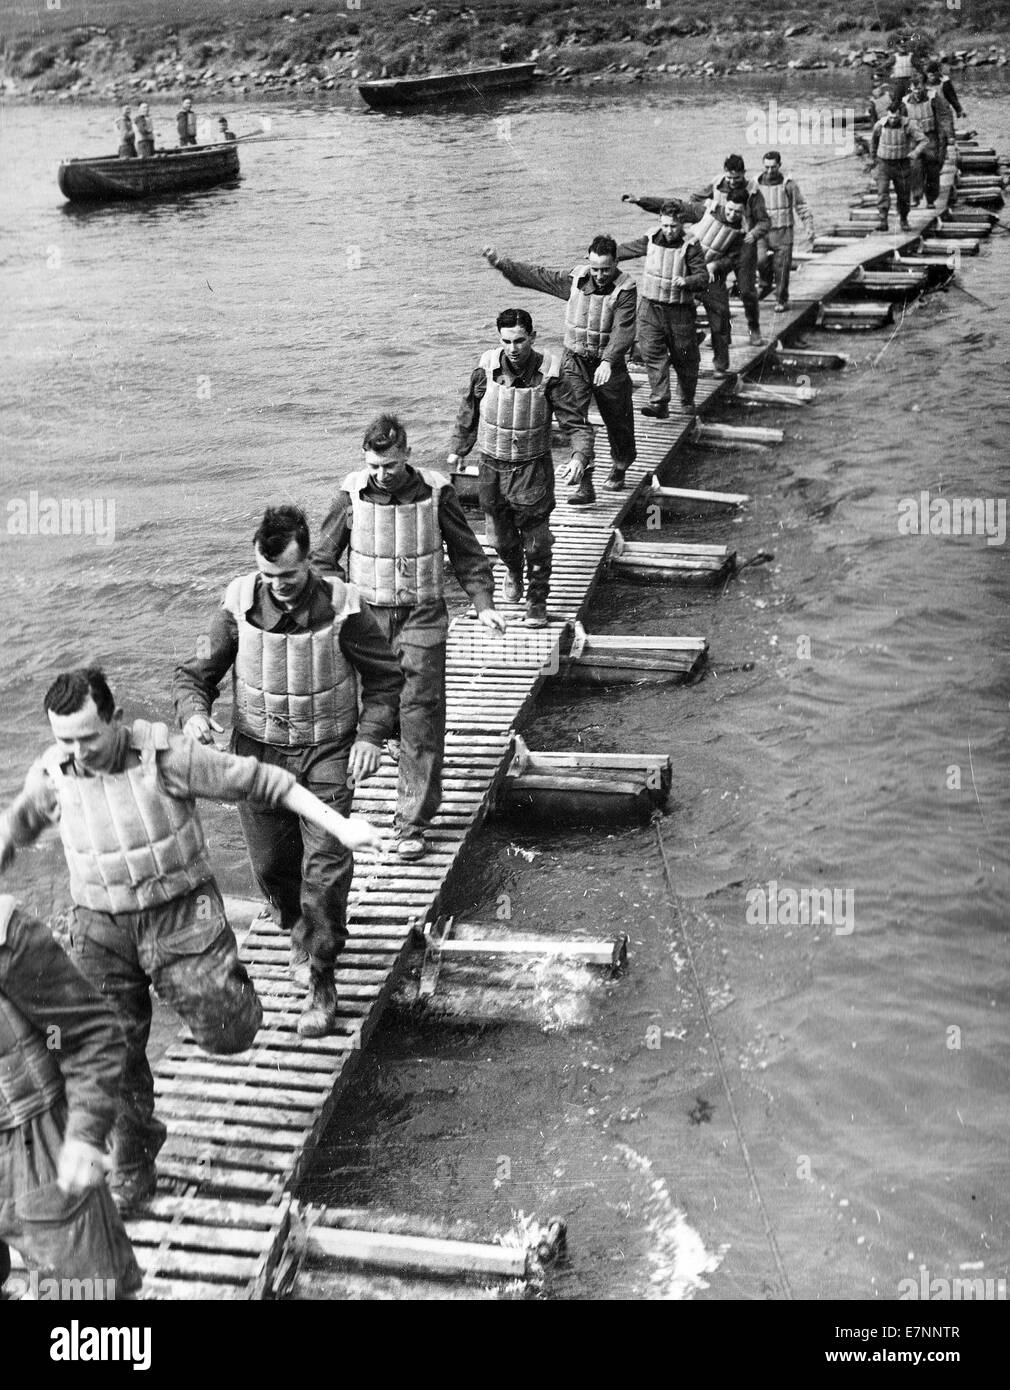 British Royal Engineers test a newly built infantry bridge across a river. WW2 - Stock Image